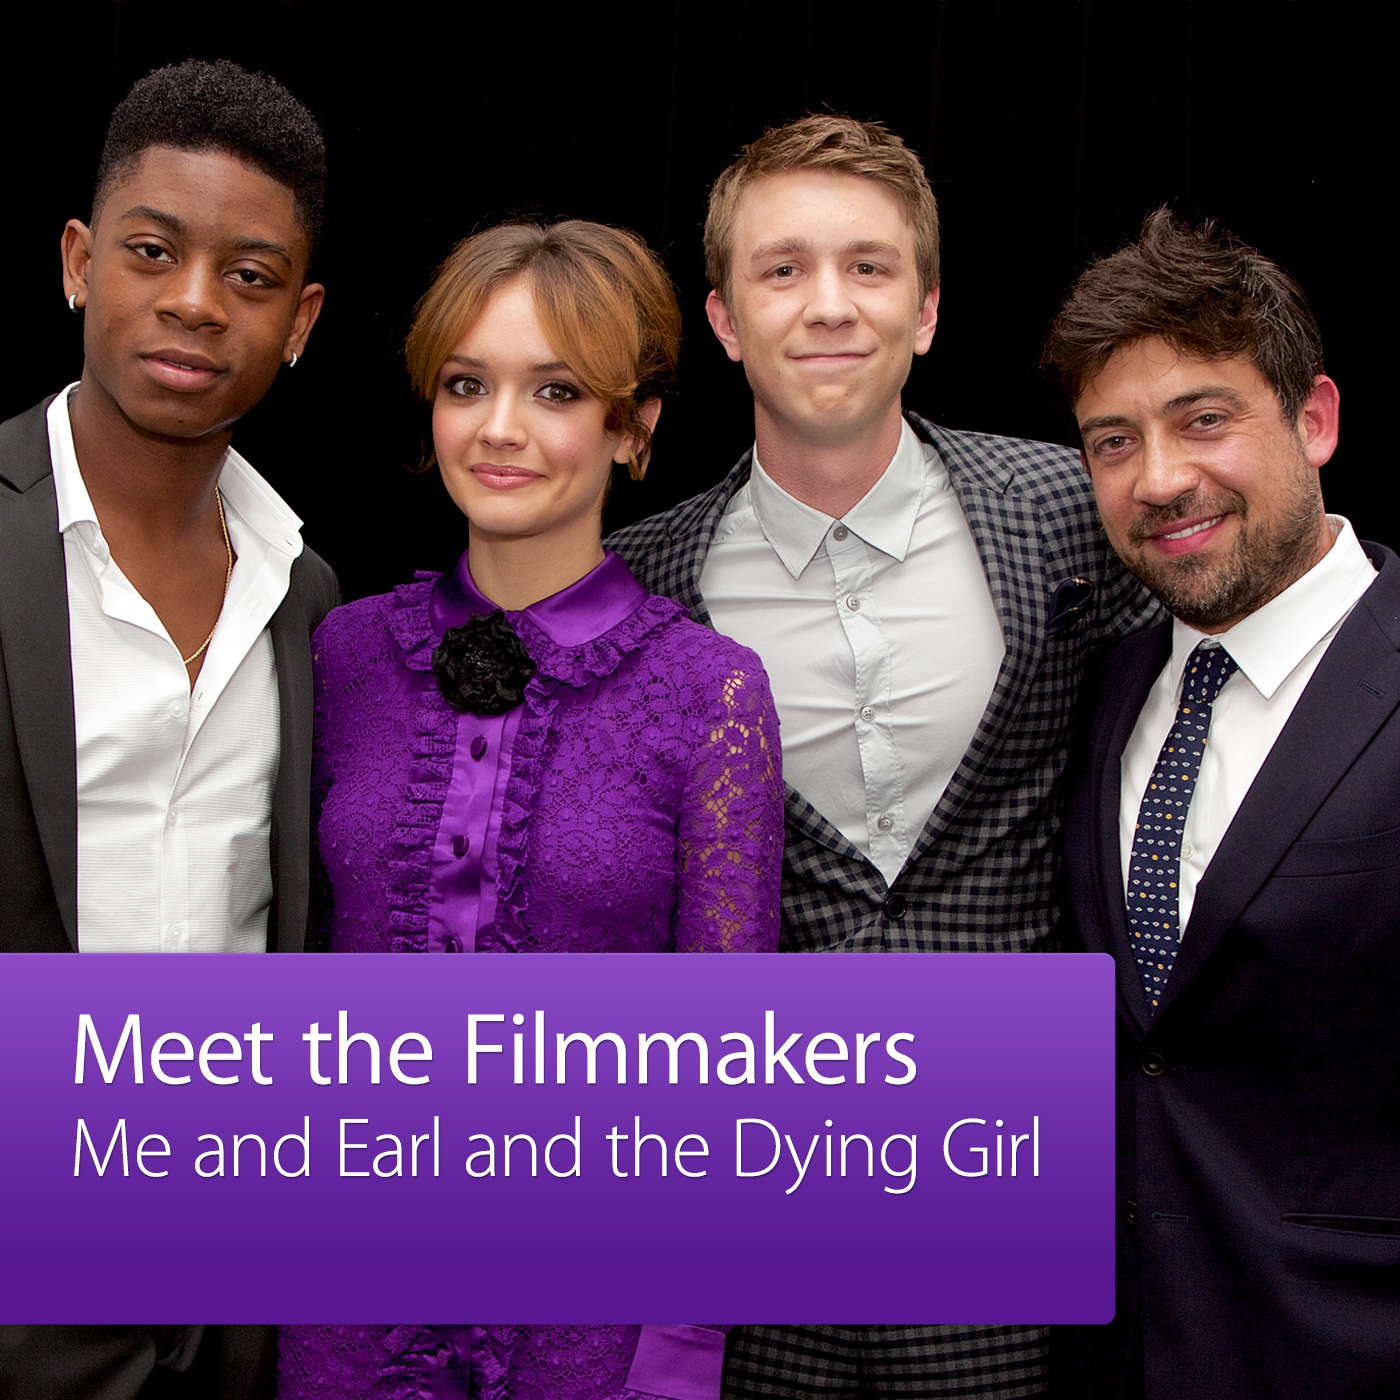 Me and Earl and the Dying Girl: Meet the Filmmaker UK